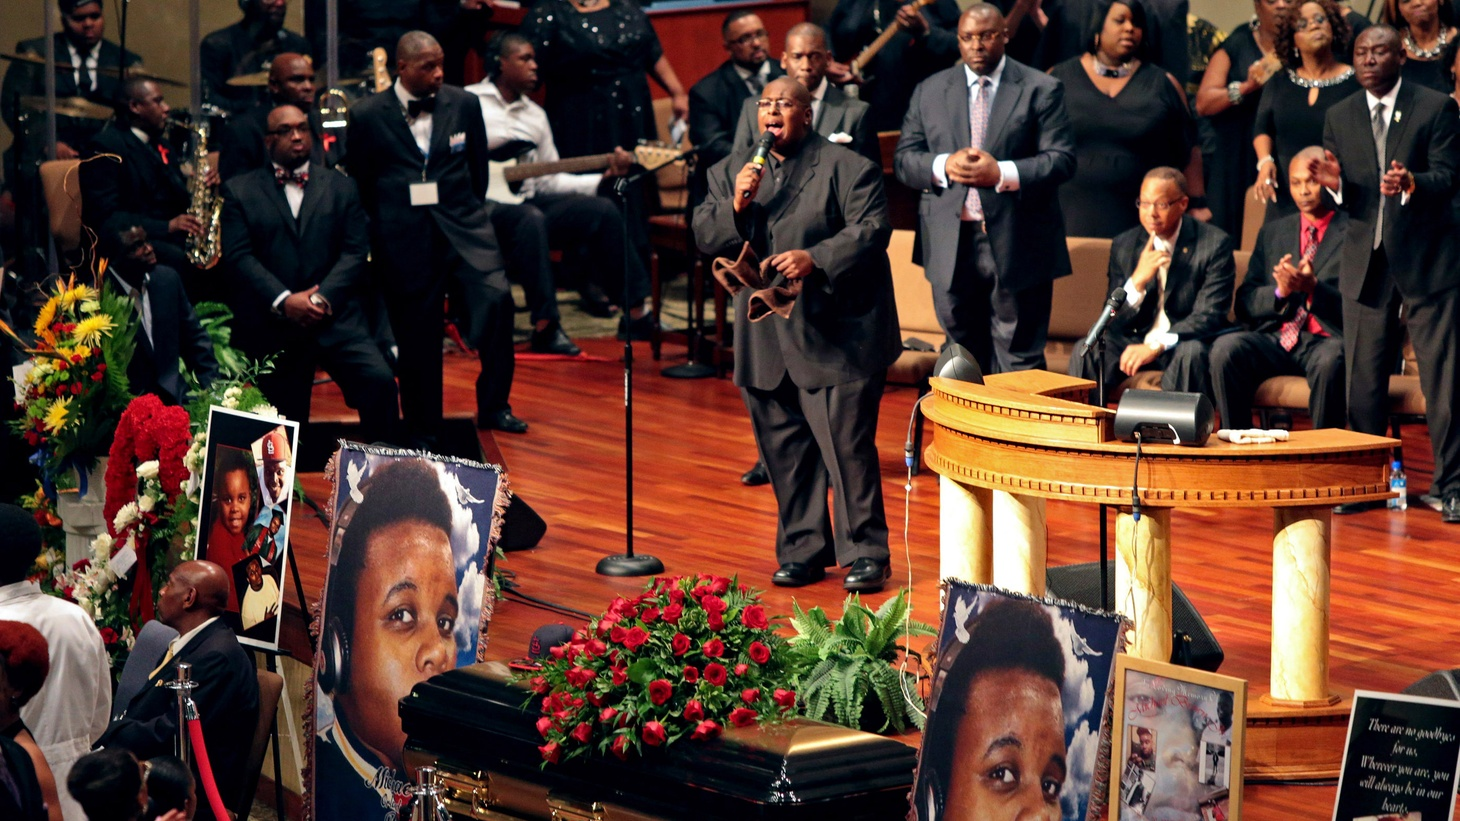 A White House delegation attended today's funeral for Michael Brown, in Ferguson, Missouri.  He was the unarmed, young black man killed 2 weeks ago by a white policeman.  Did the President miss an opportunity by not going himself?